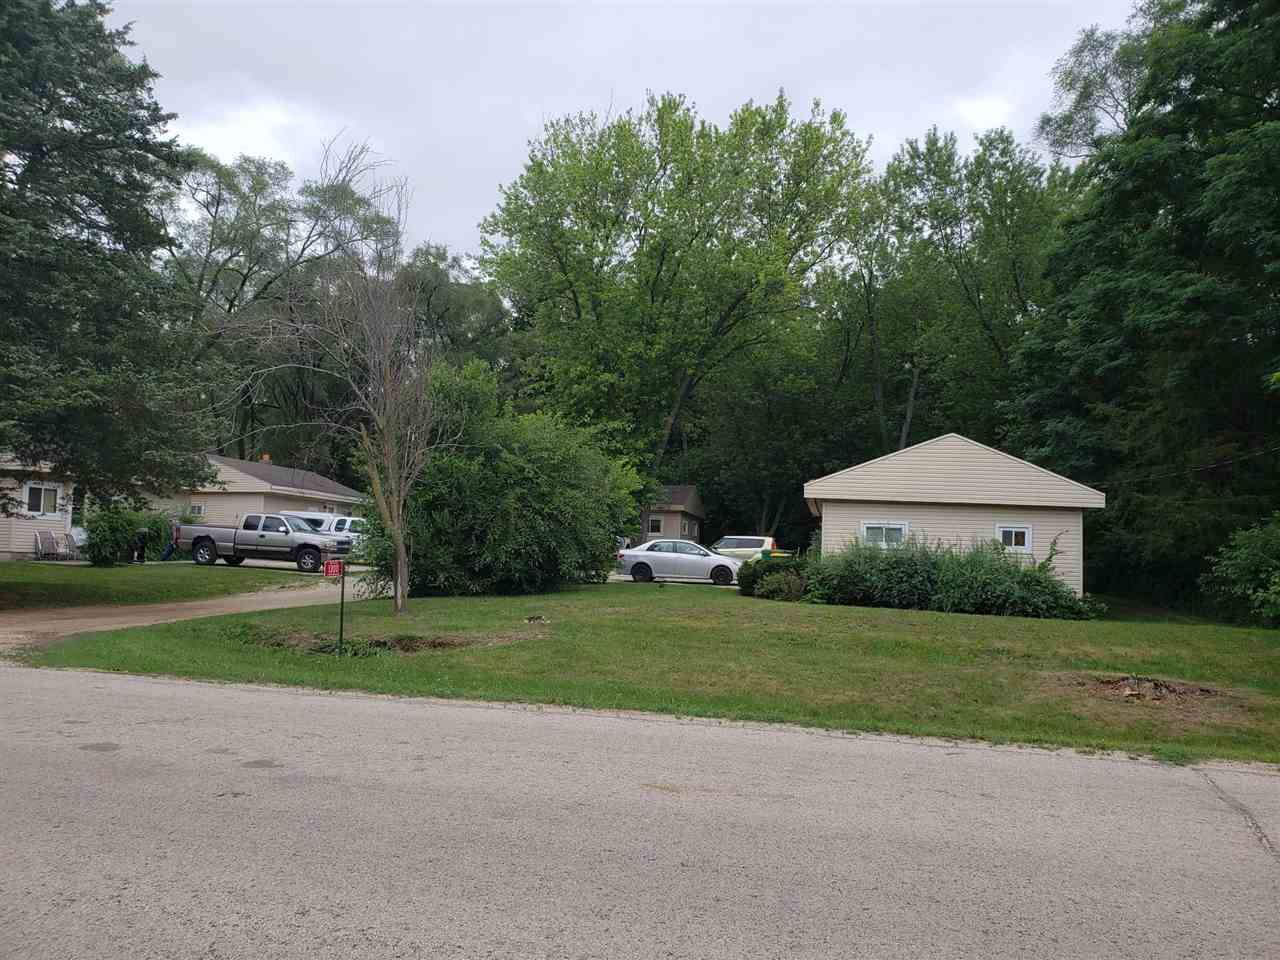 1300 W Happy Hollow Rd, Janesville, WI 53546-8701 - #: 1914303